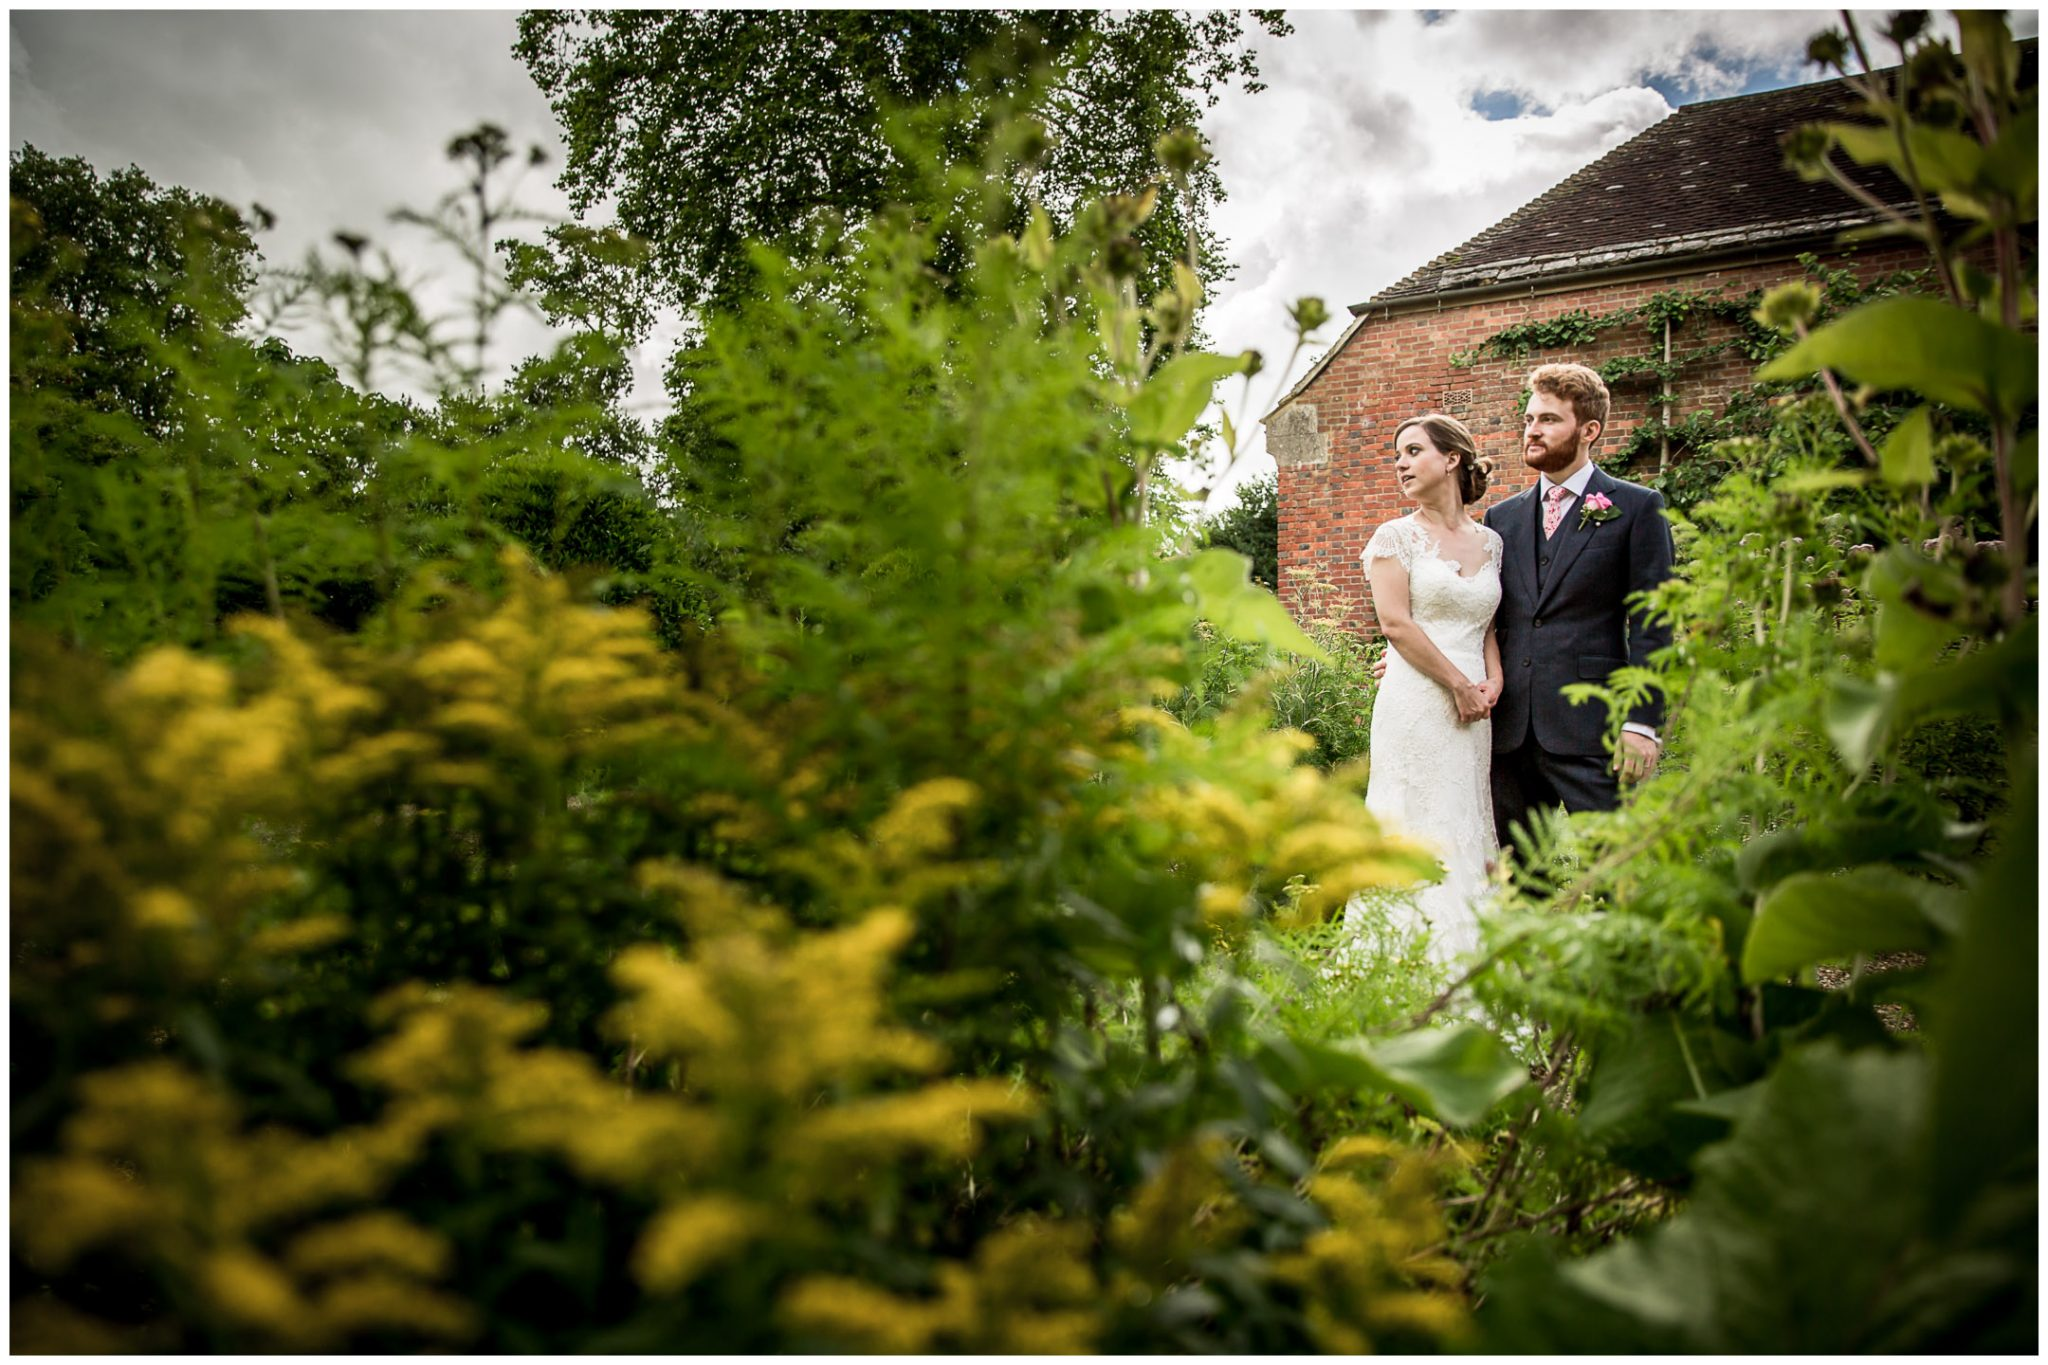 Couple amongst flowers in formal gardens at Deans Court